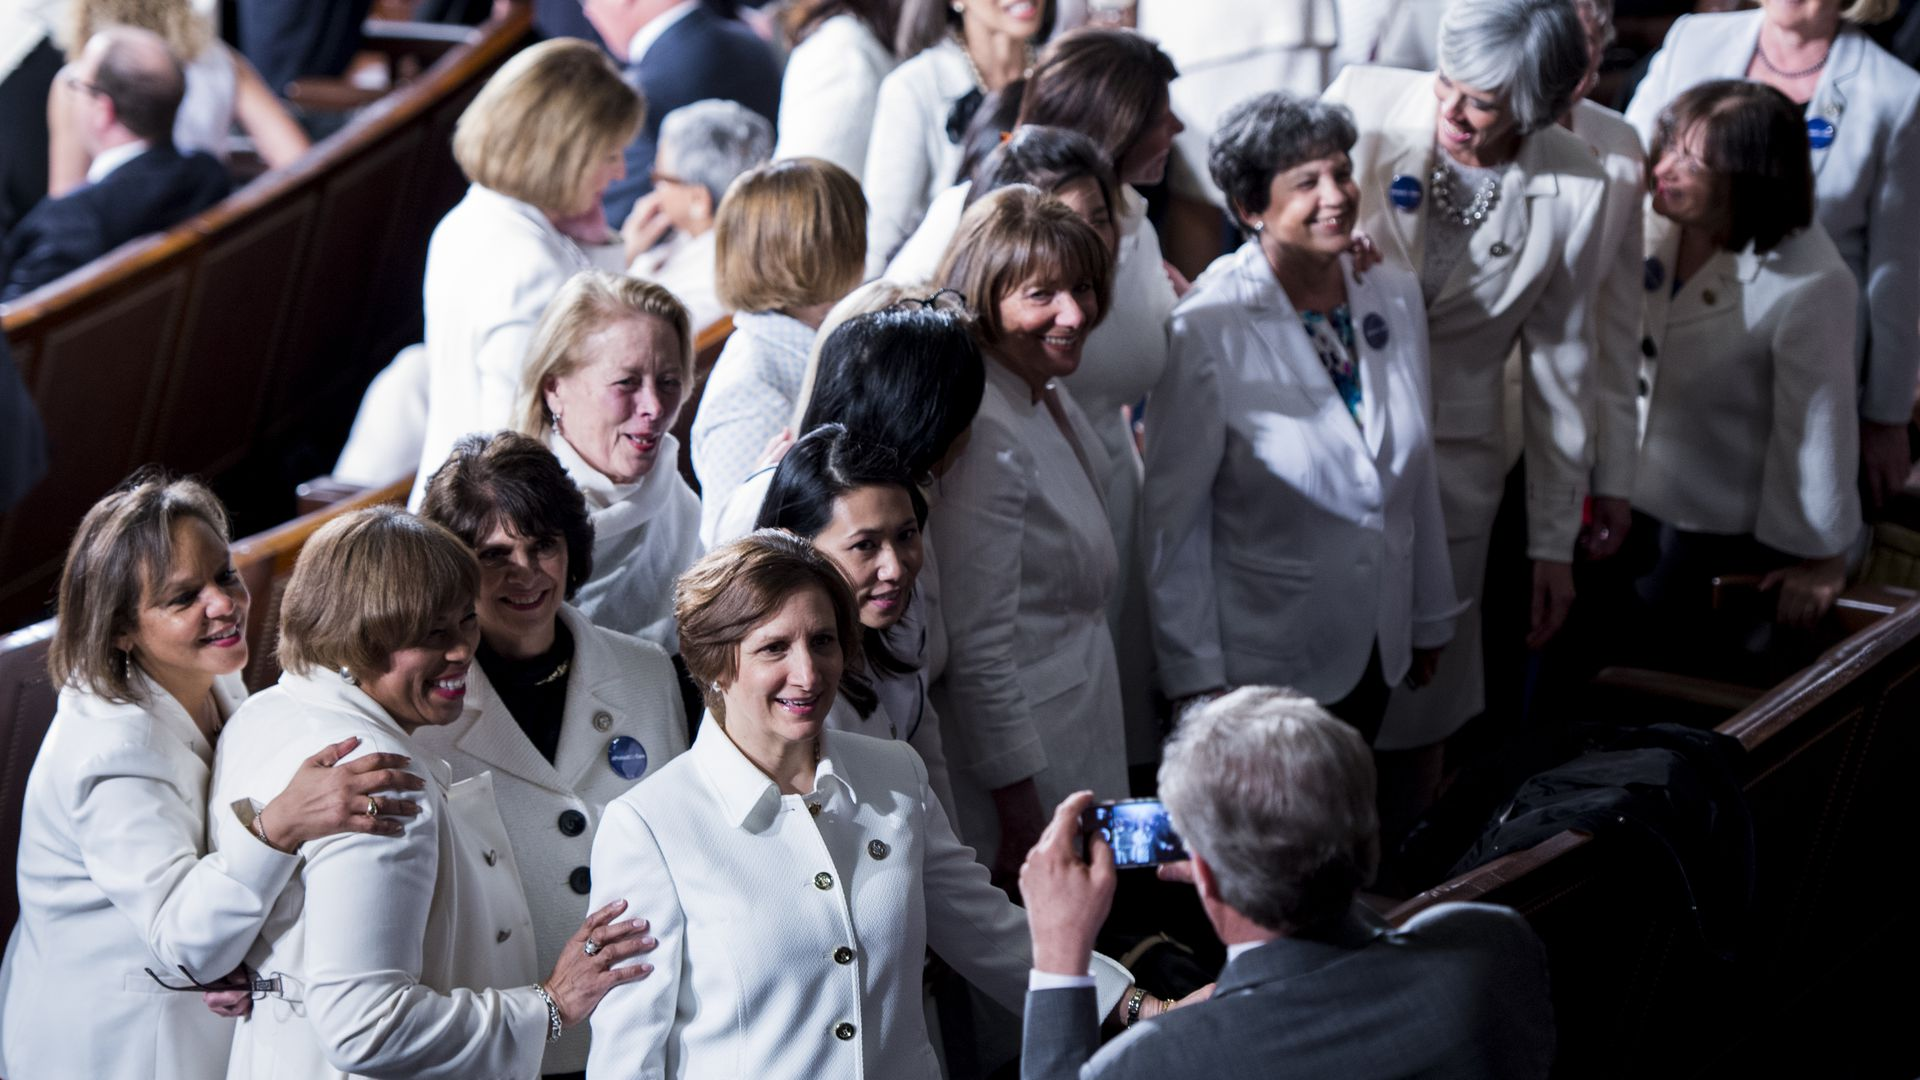 Group of Democratic women get their photo taken at President Trump's address to Congress.